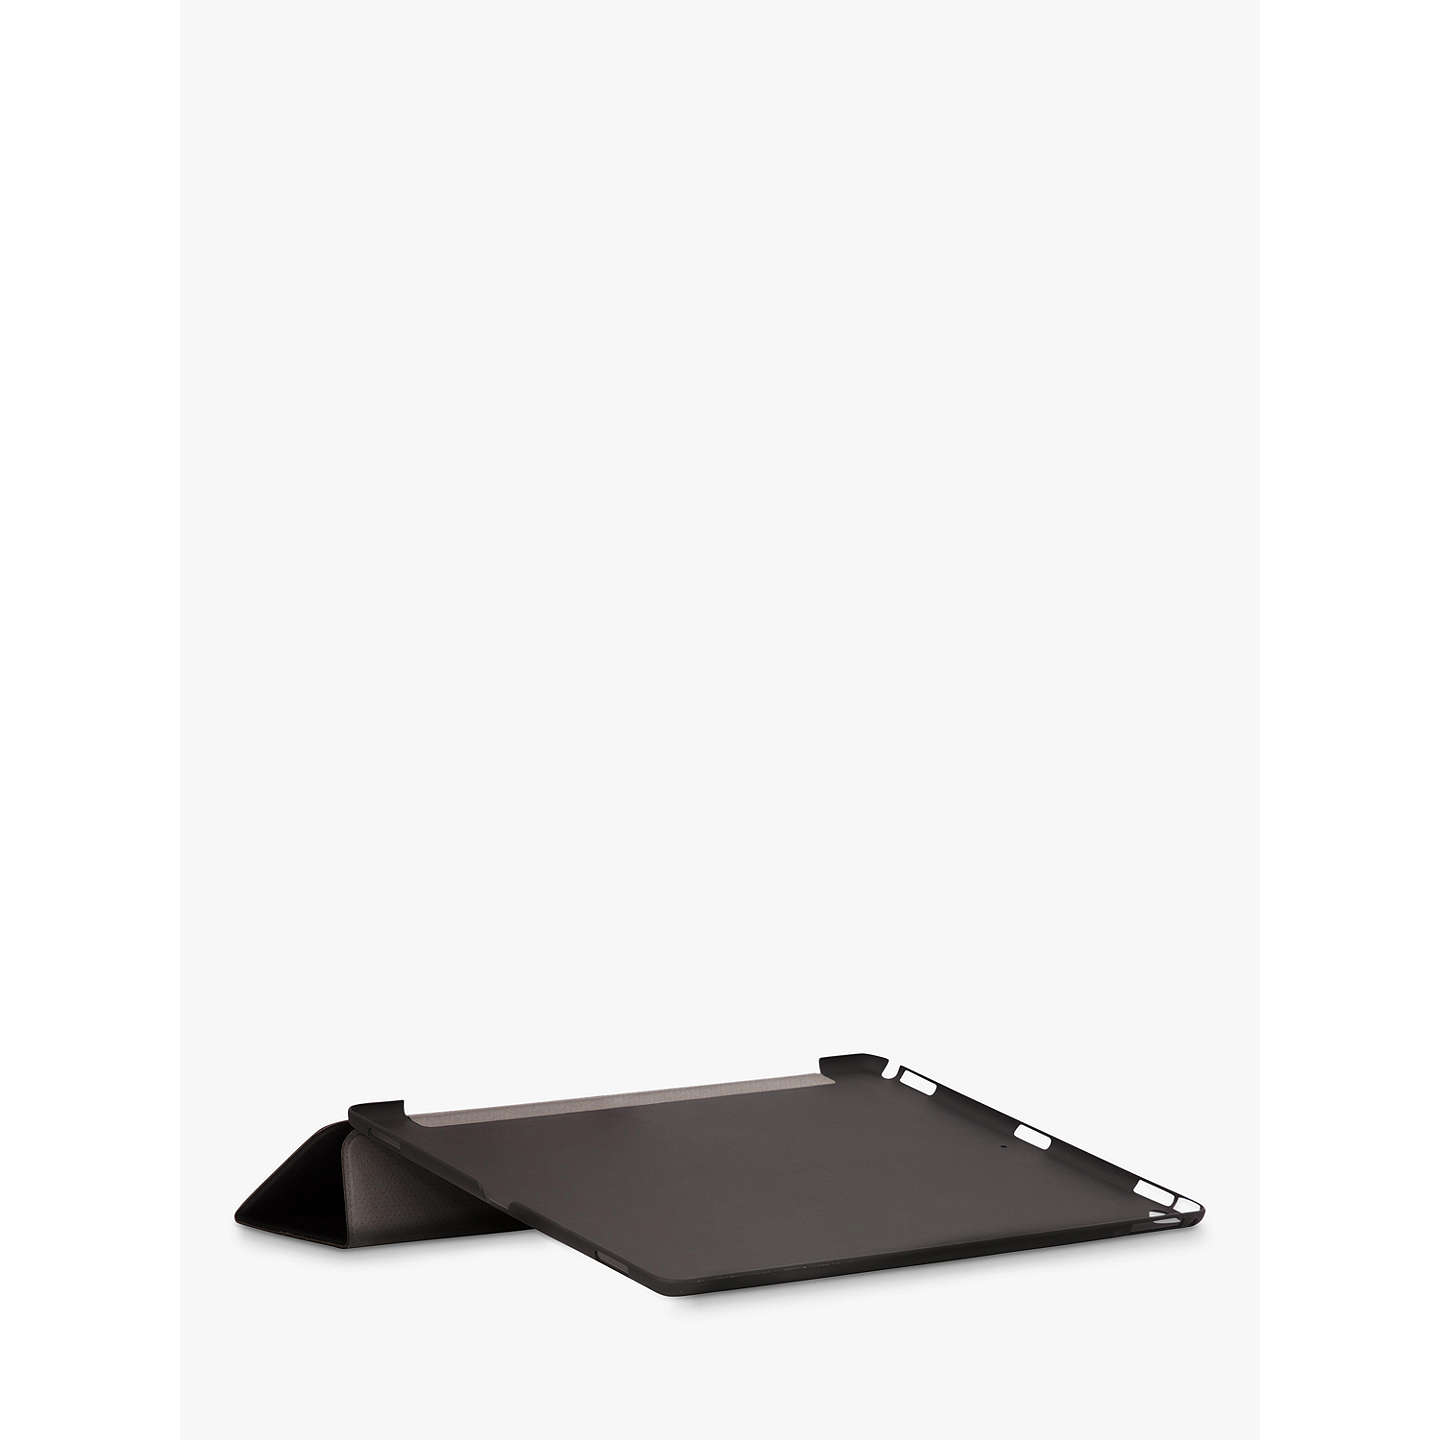 "BuyKnomo Leather Folio Cover for 12.9"" iPad Pro, Black Online at johnlewis.com"